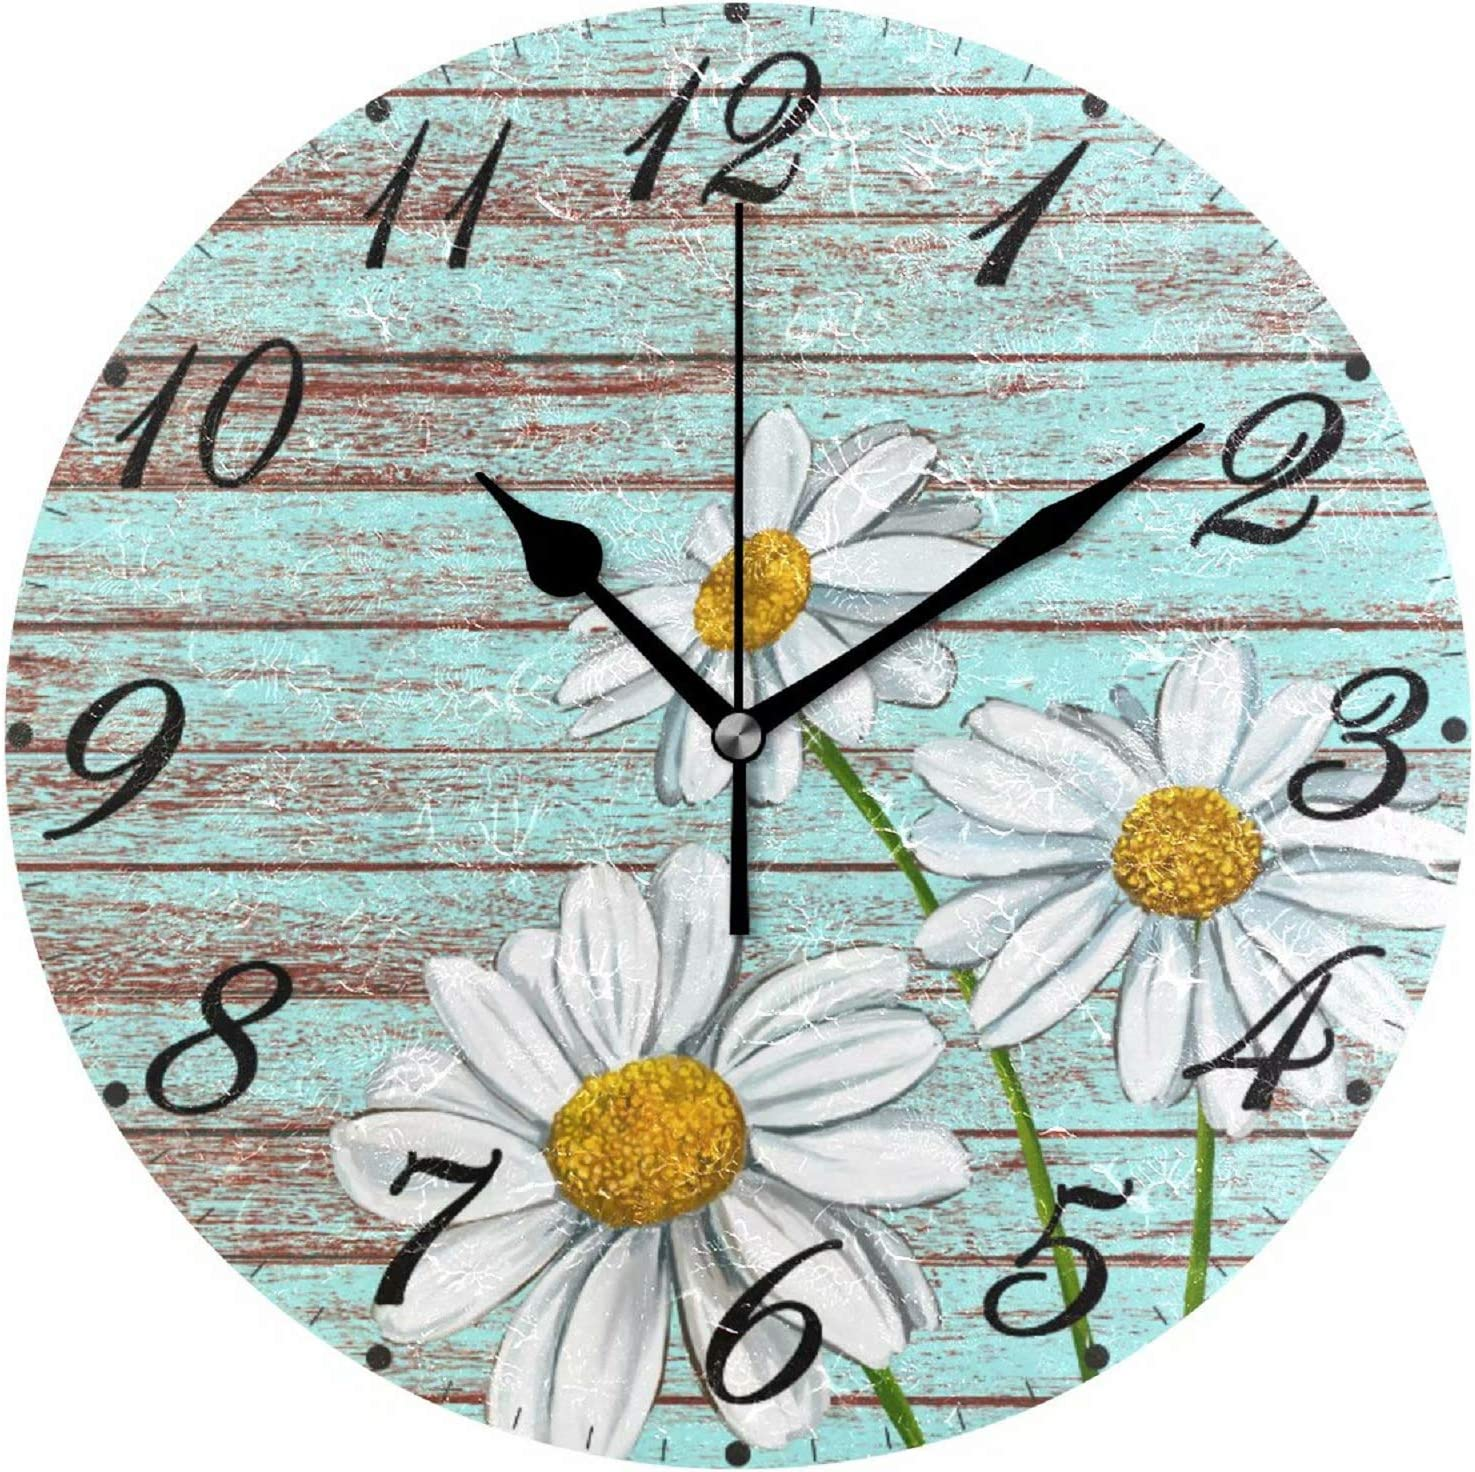 Pfrewn Wooden Sunflower Daisy Wall Clock Silent Non Ticking Retro Bird Floral Clocks Battery Operated Watercolor Vintage Desk Clock 10 Inch Quartz Analog Quiet Bedroom Living Room Home Decor